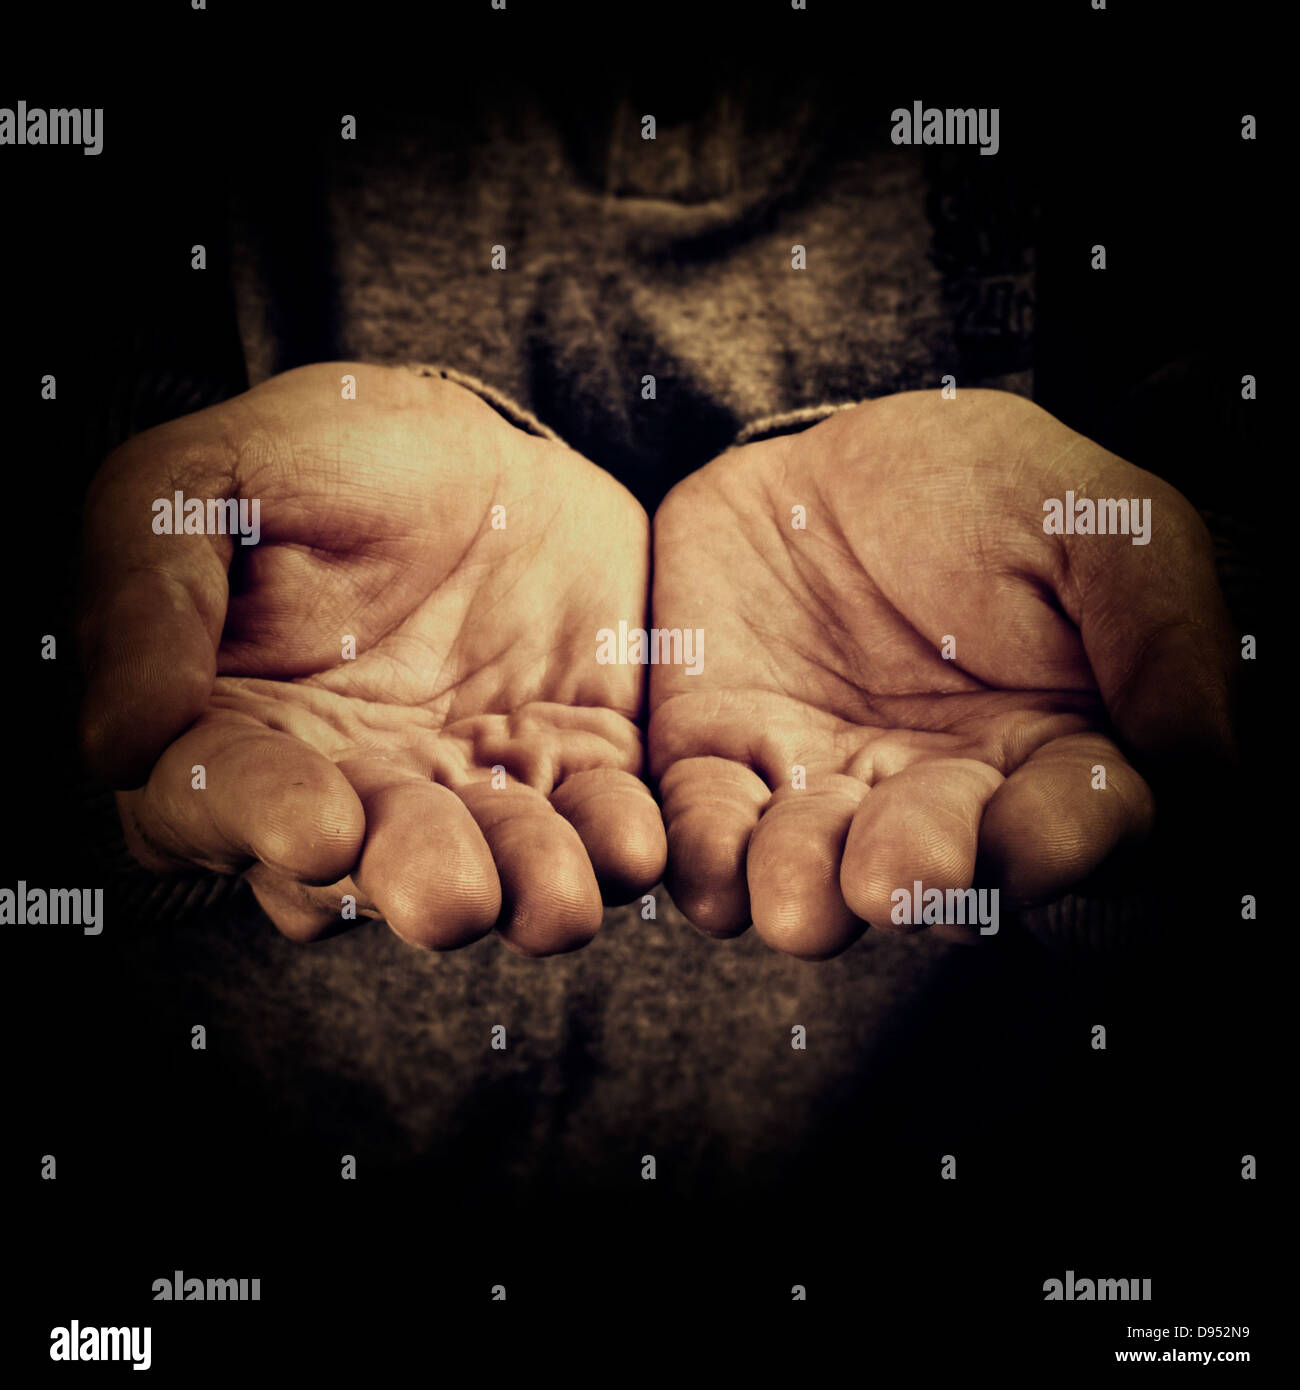 High contrast image of a person begging - Stock Image